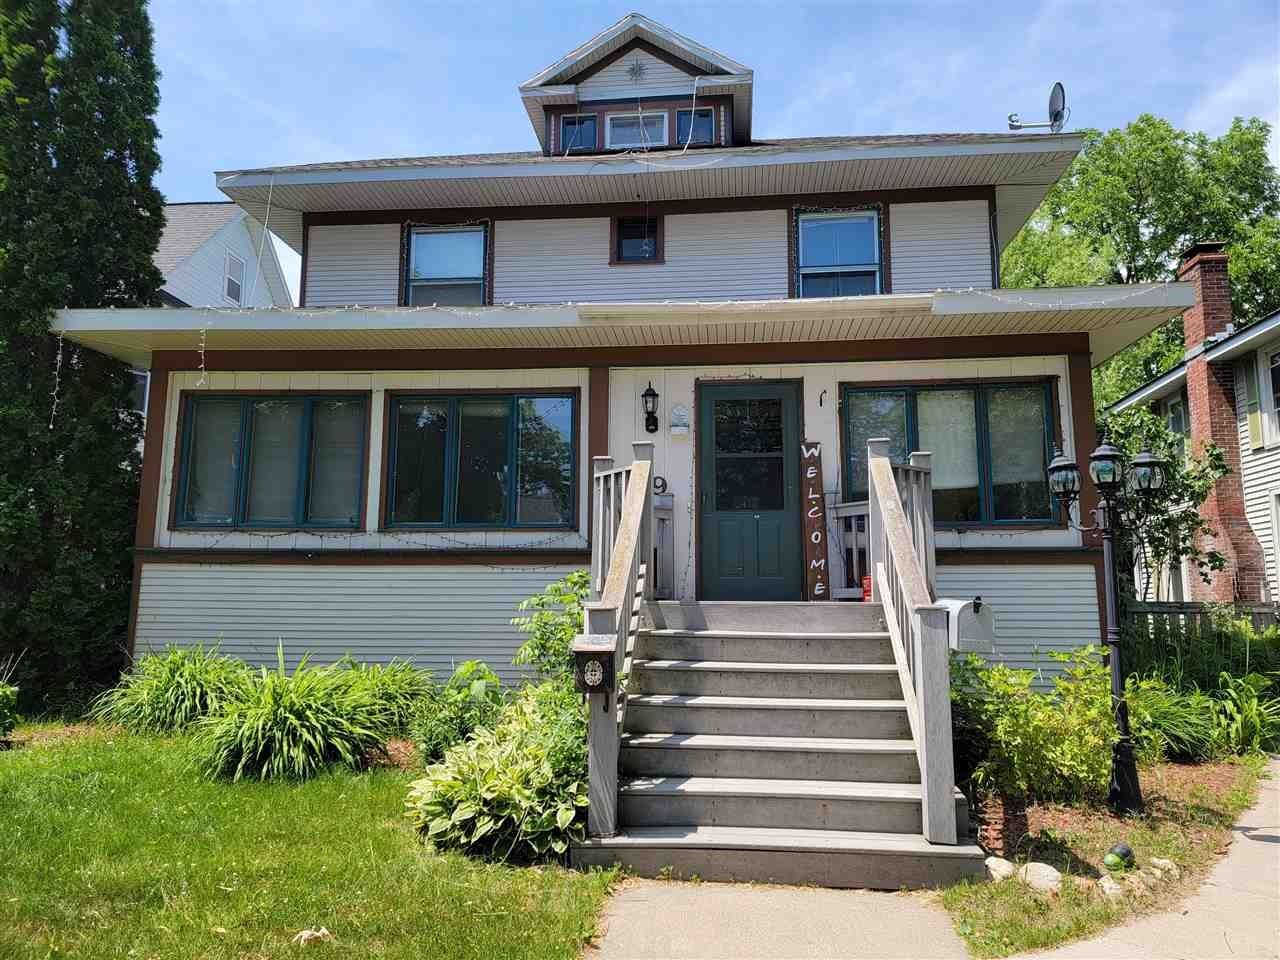 619 McLean Ave, Tomah, WI 54660 - #: 1911731